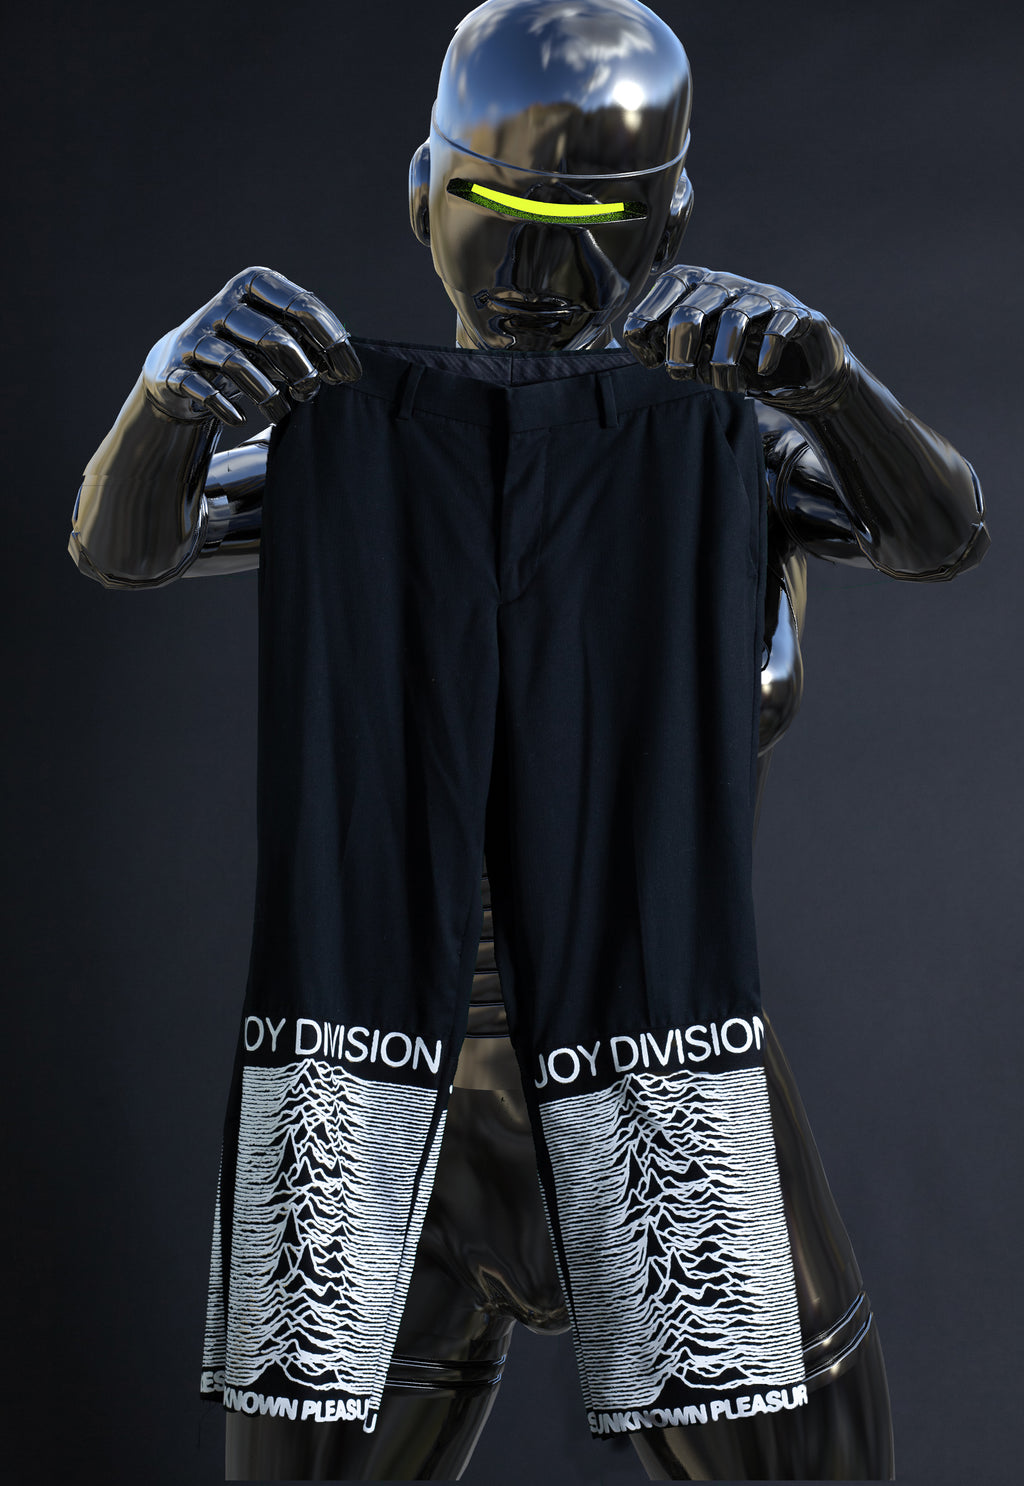 joy division cropped trousers